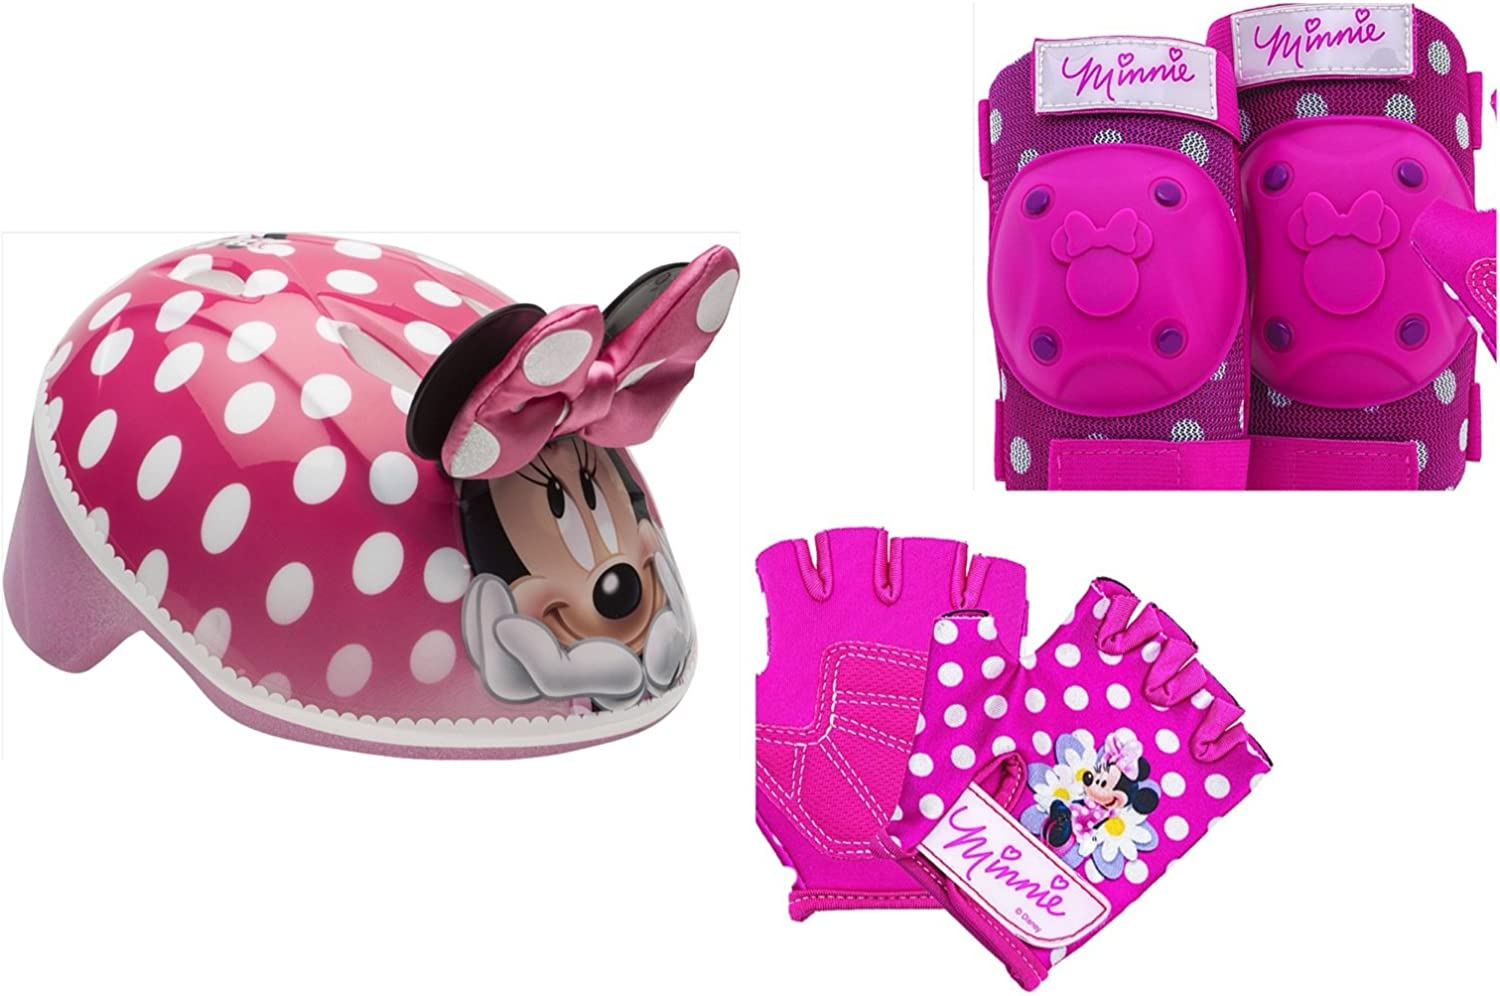 Bell Protective Gear with Elbow Pads//Knee Pads and Gloves Minnie Mouse